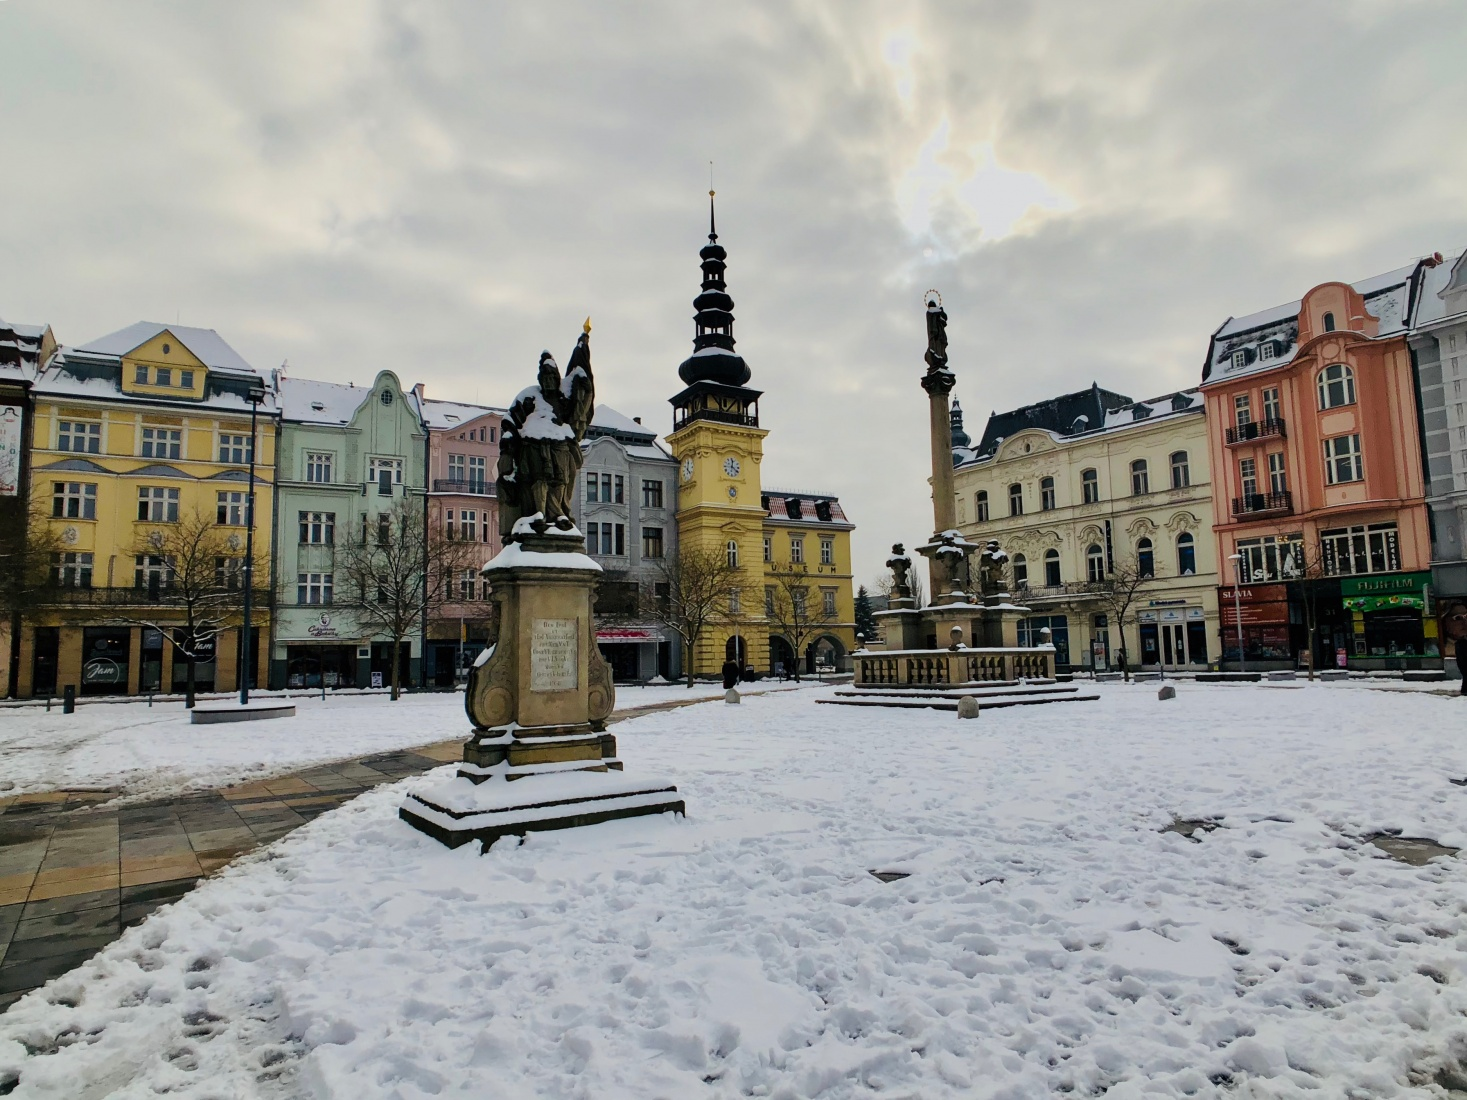 Tiny Old Town in Ostrava, Czech Republic, with interesting architecture, spires, and several statues.